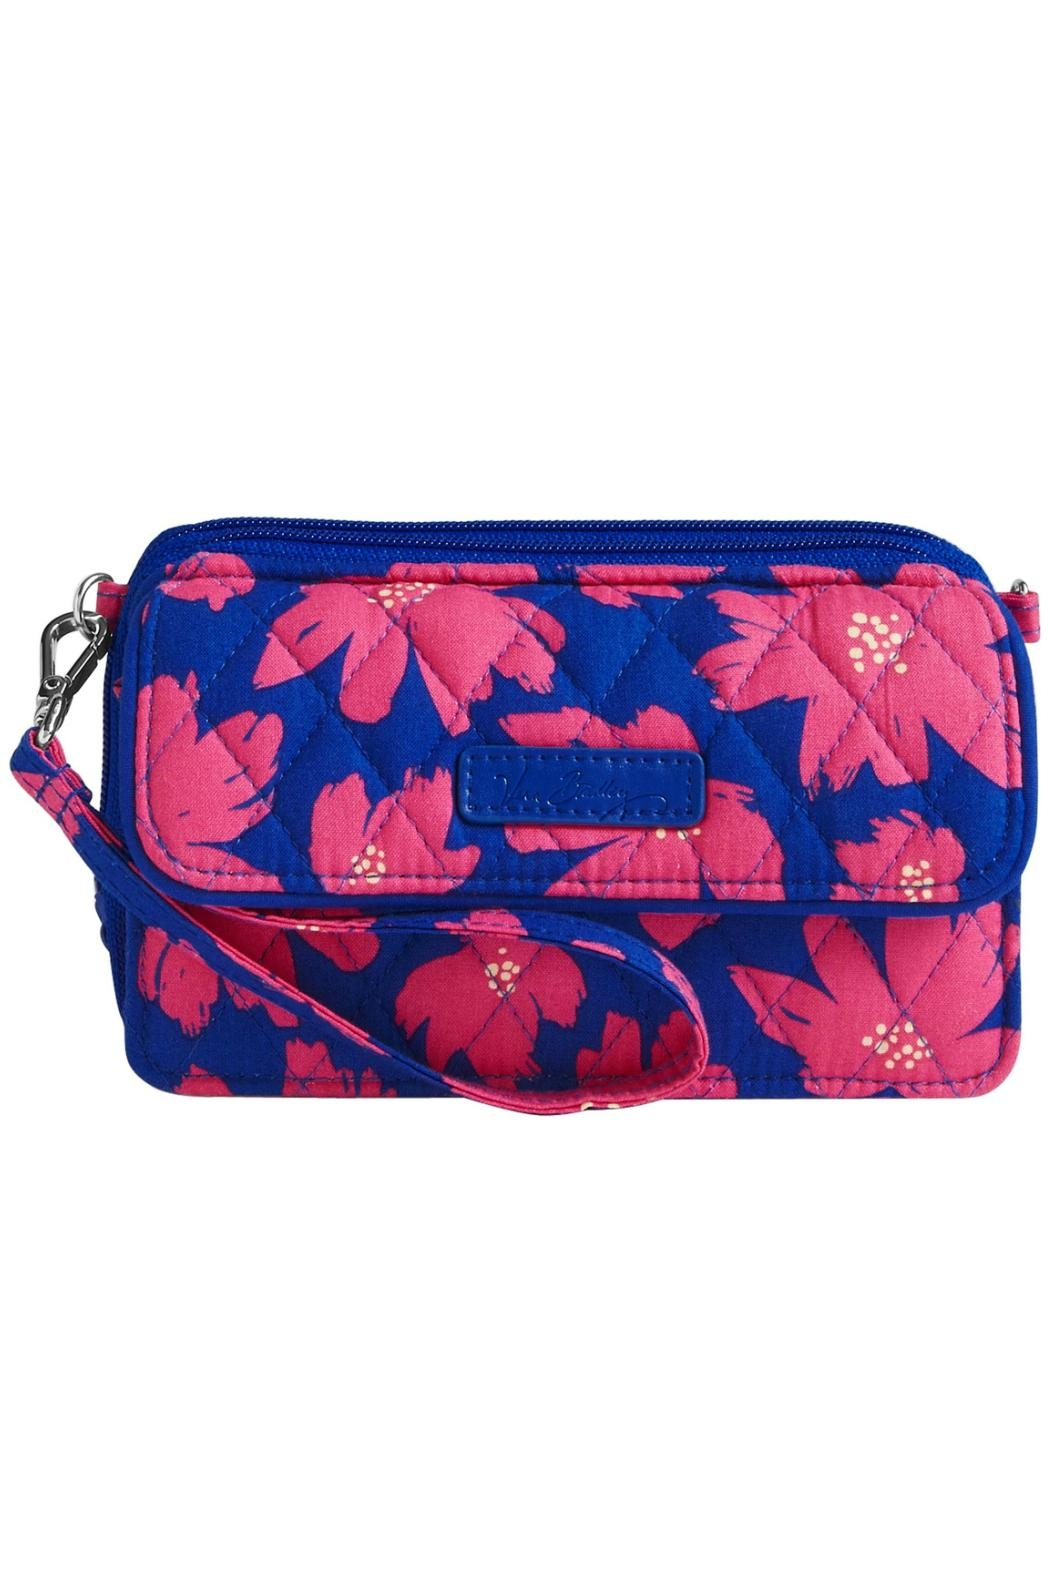 Vera Bradley Art Poppies Bag - Front Cropped Image